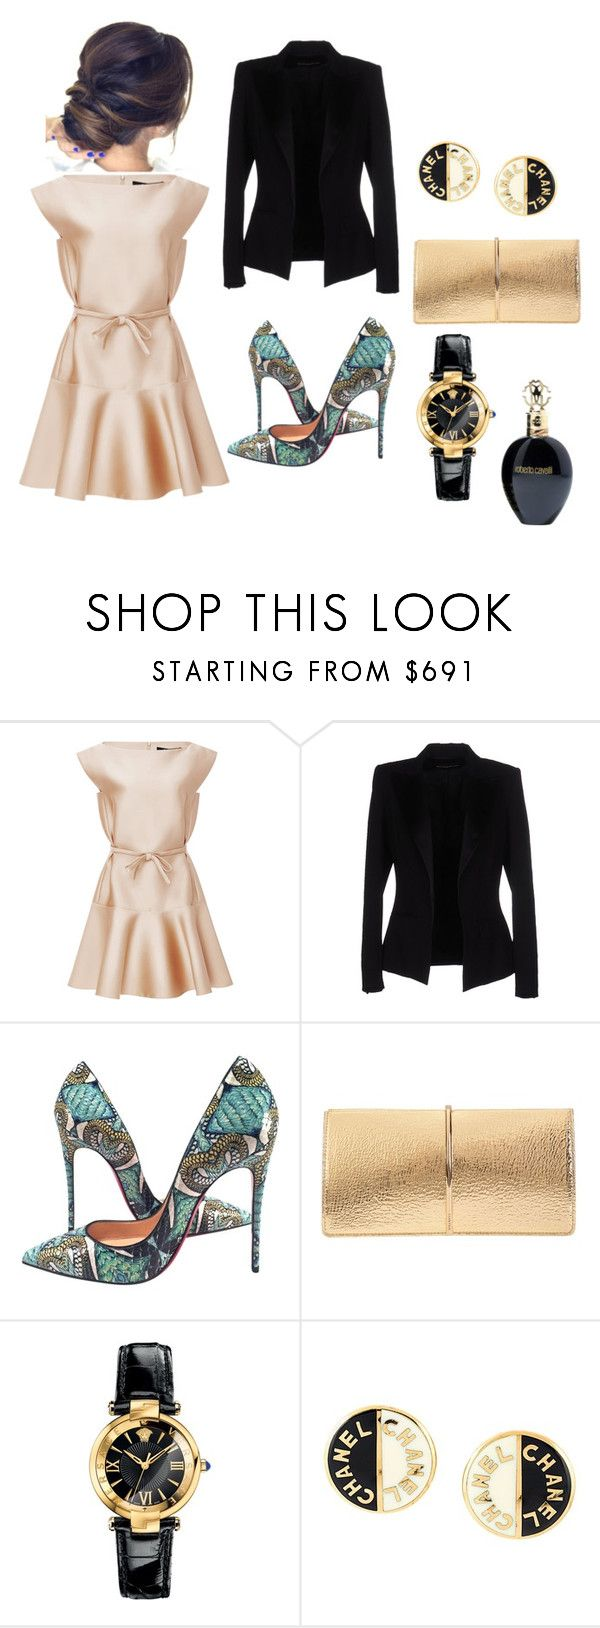 """#gold dress"" by seldy-enes ❤ liked on Polyvore featuring Paule Ka, Alexandre Vauthier, Christian Louboutin, Nina Ricci, Versace, Chanel and Roberto Cavalli"